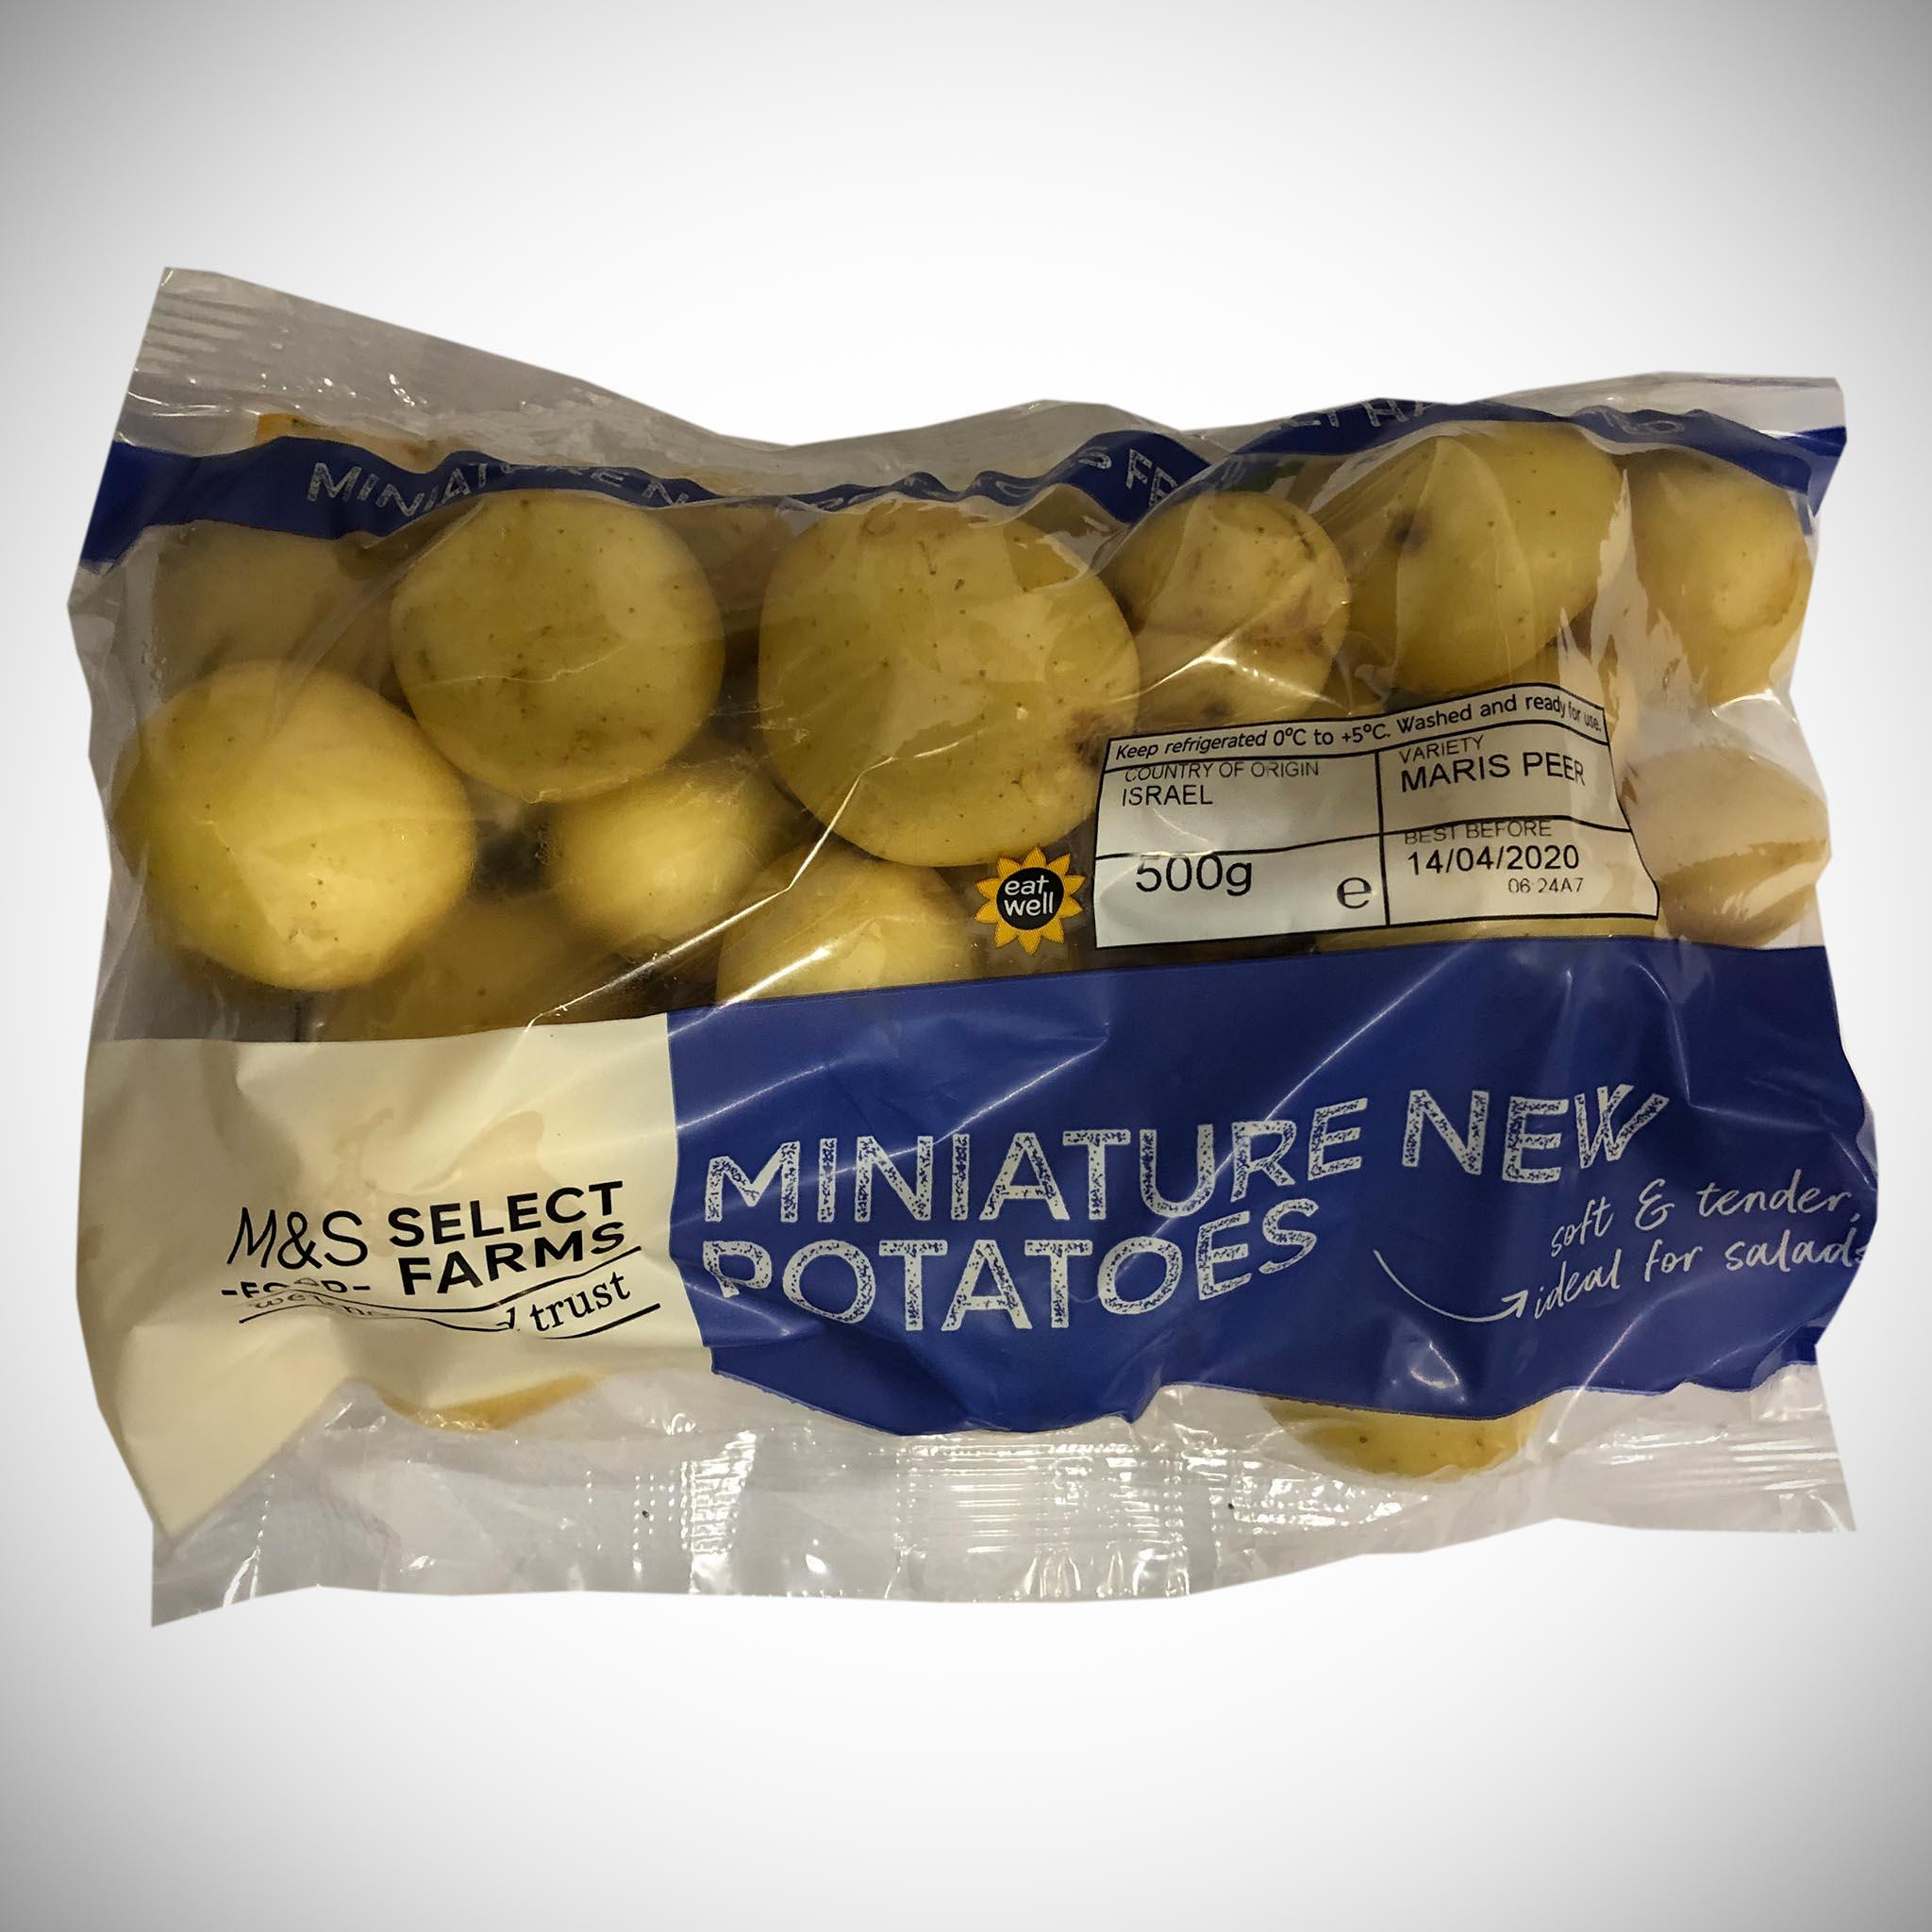 Miniature New Potatoes 500g